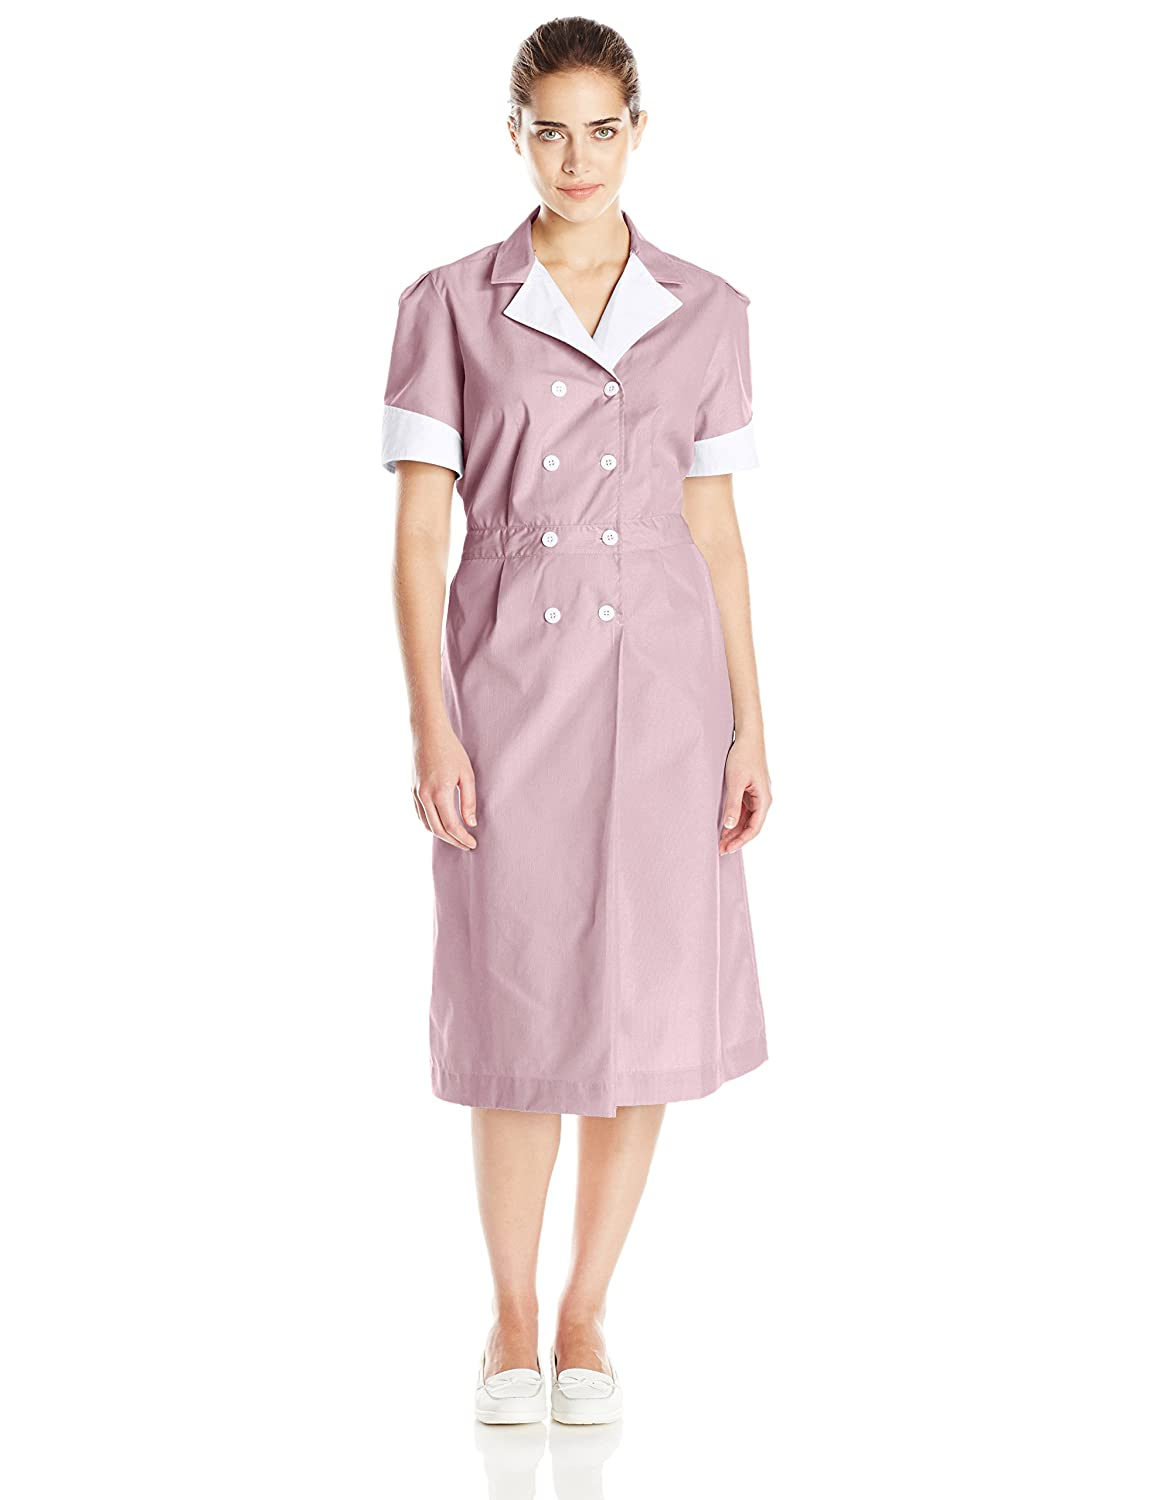 1940s Dress Styles Red Kap Womens Lapel Dress $71.59 AT vintagedancer.com